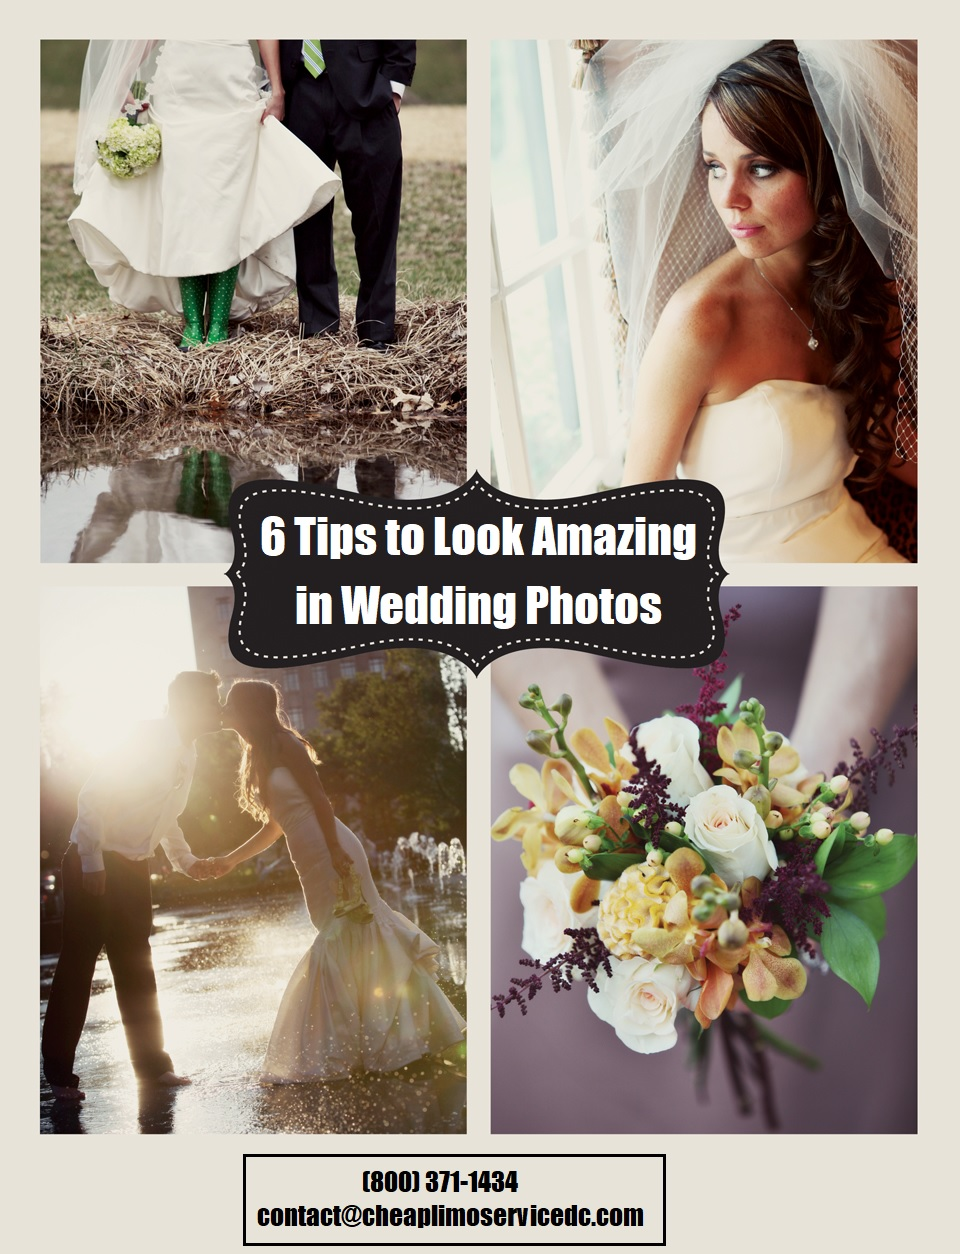 Fantastic Tips for a Highly Photogenic Wedding Photoshoot